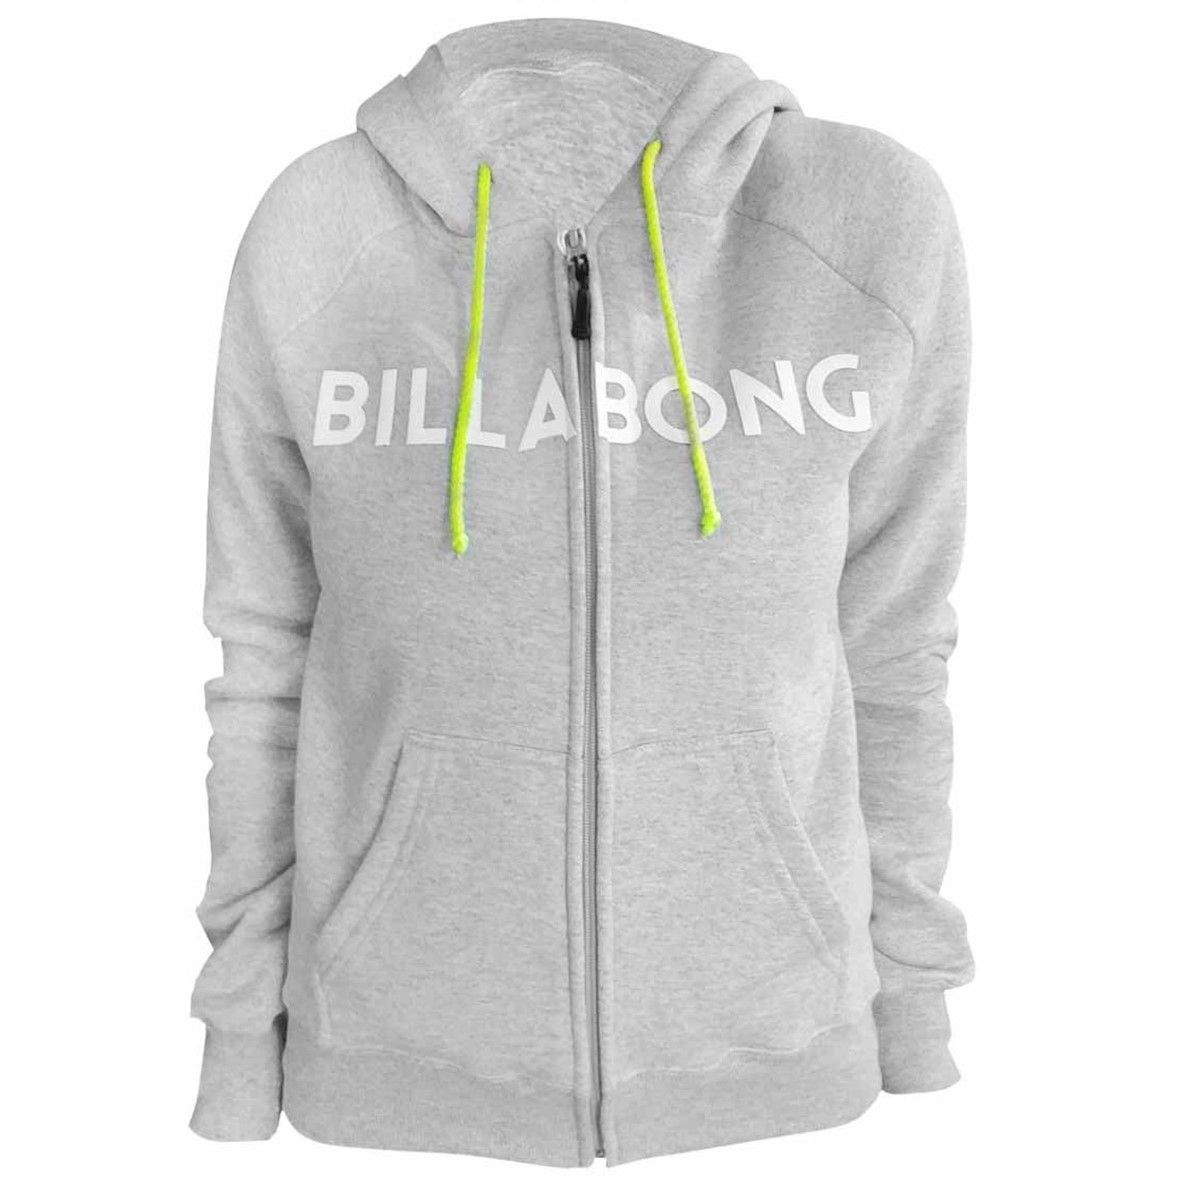 Moletom Billabong Feminino Cali Fit Grey